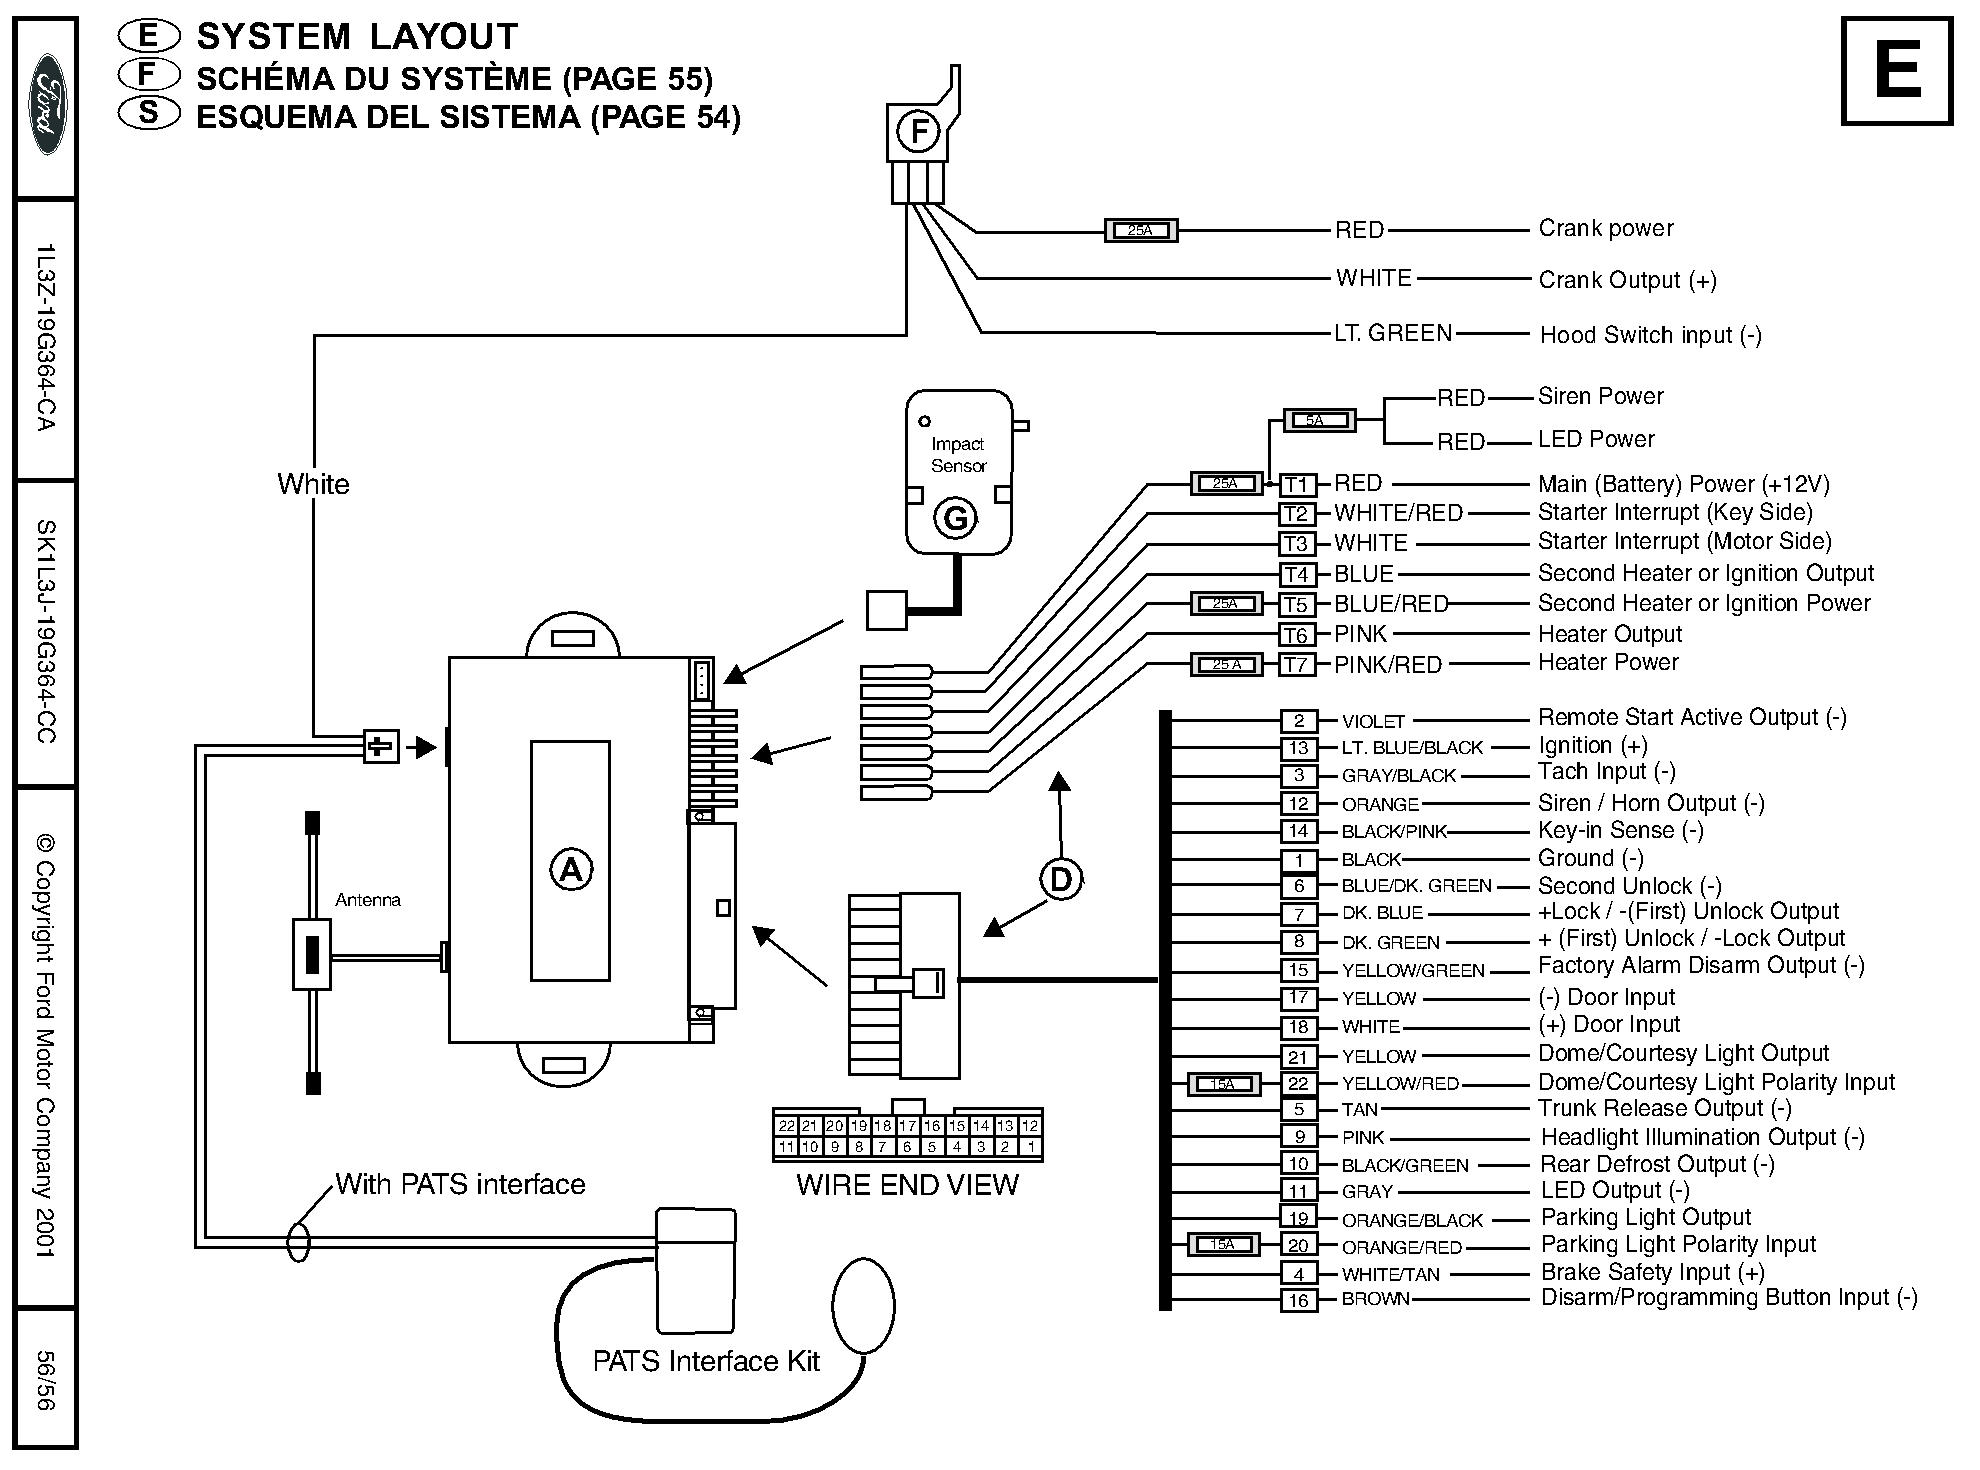 Toyota Rear Ke Diagram, Toyota, Free Engine Image For User